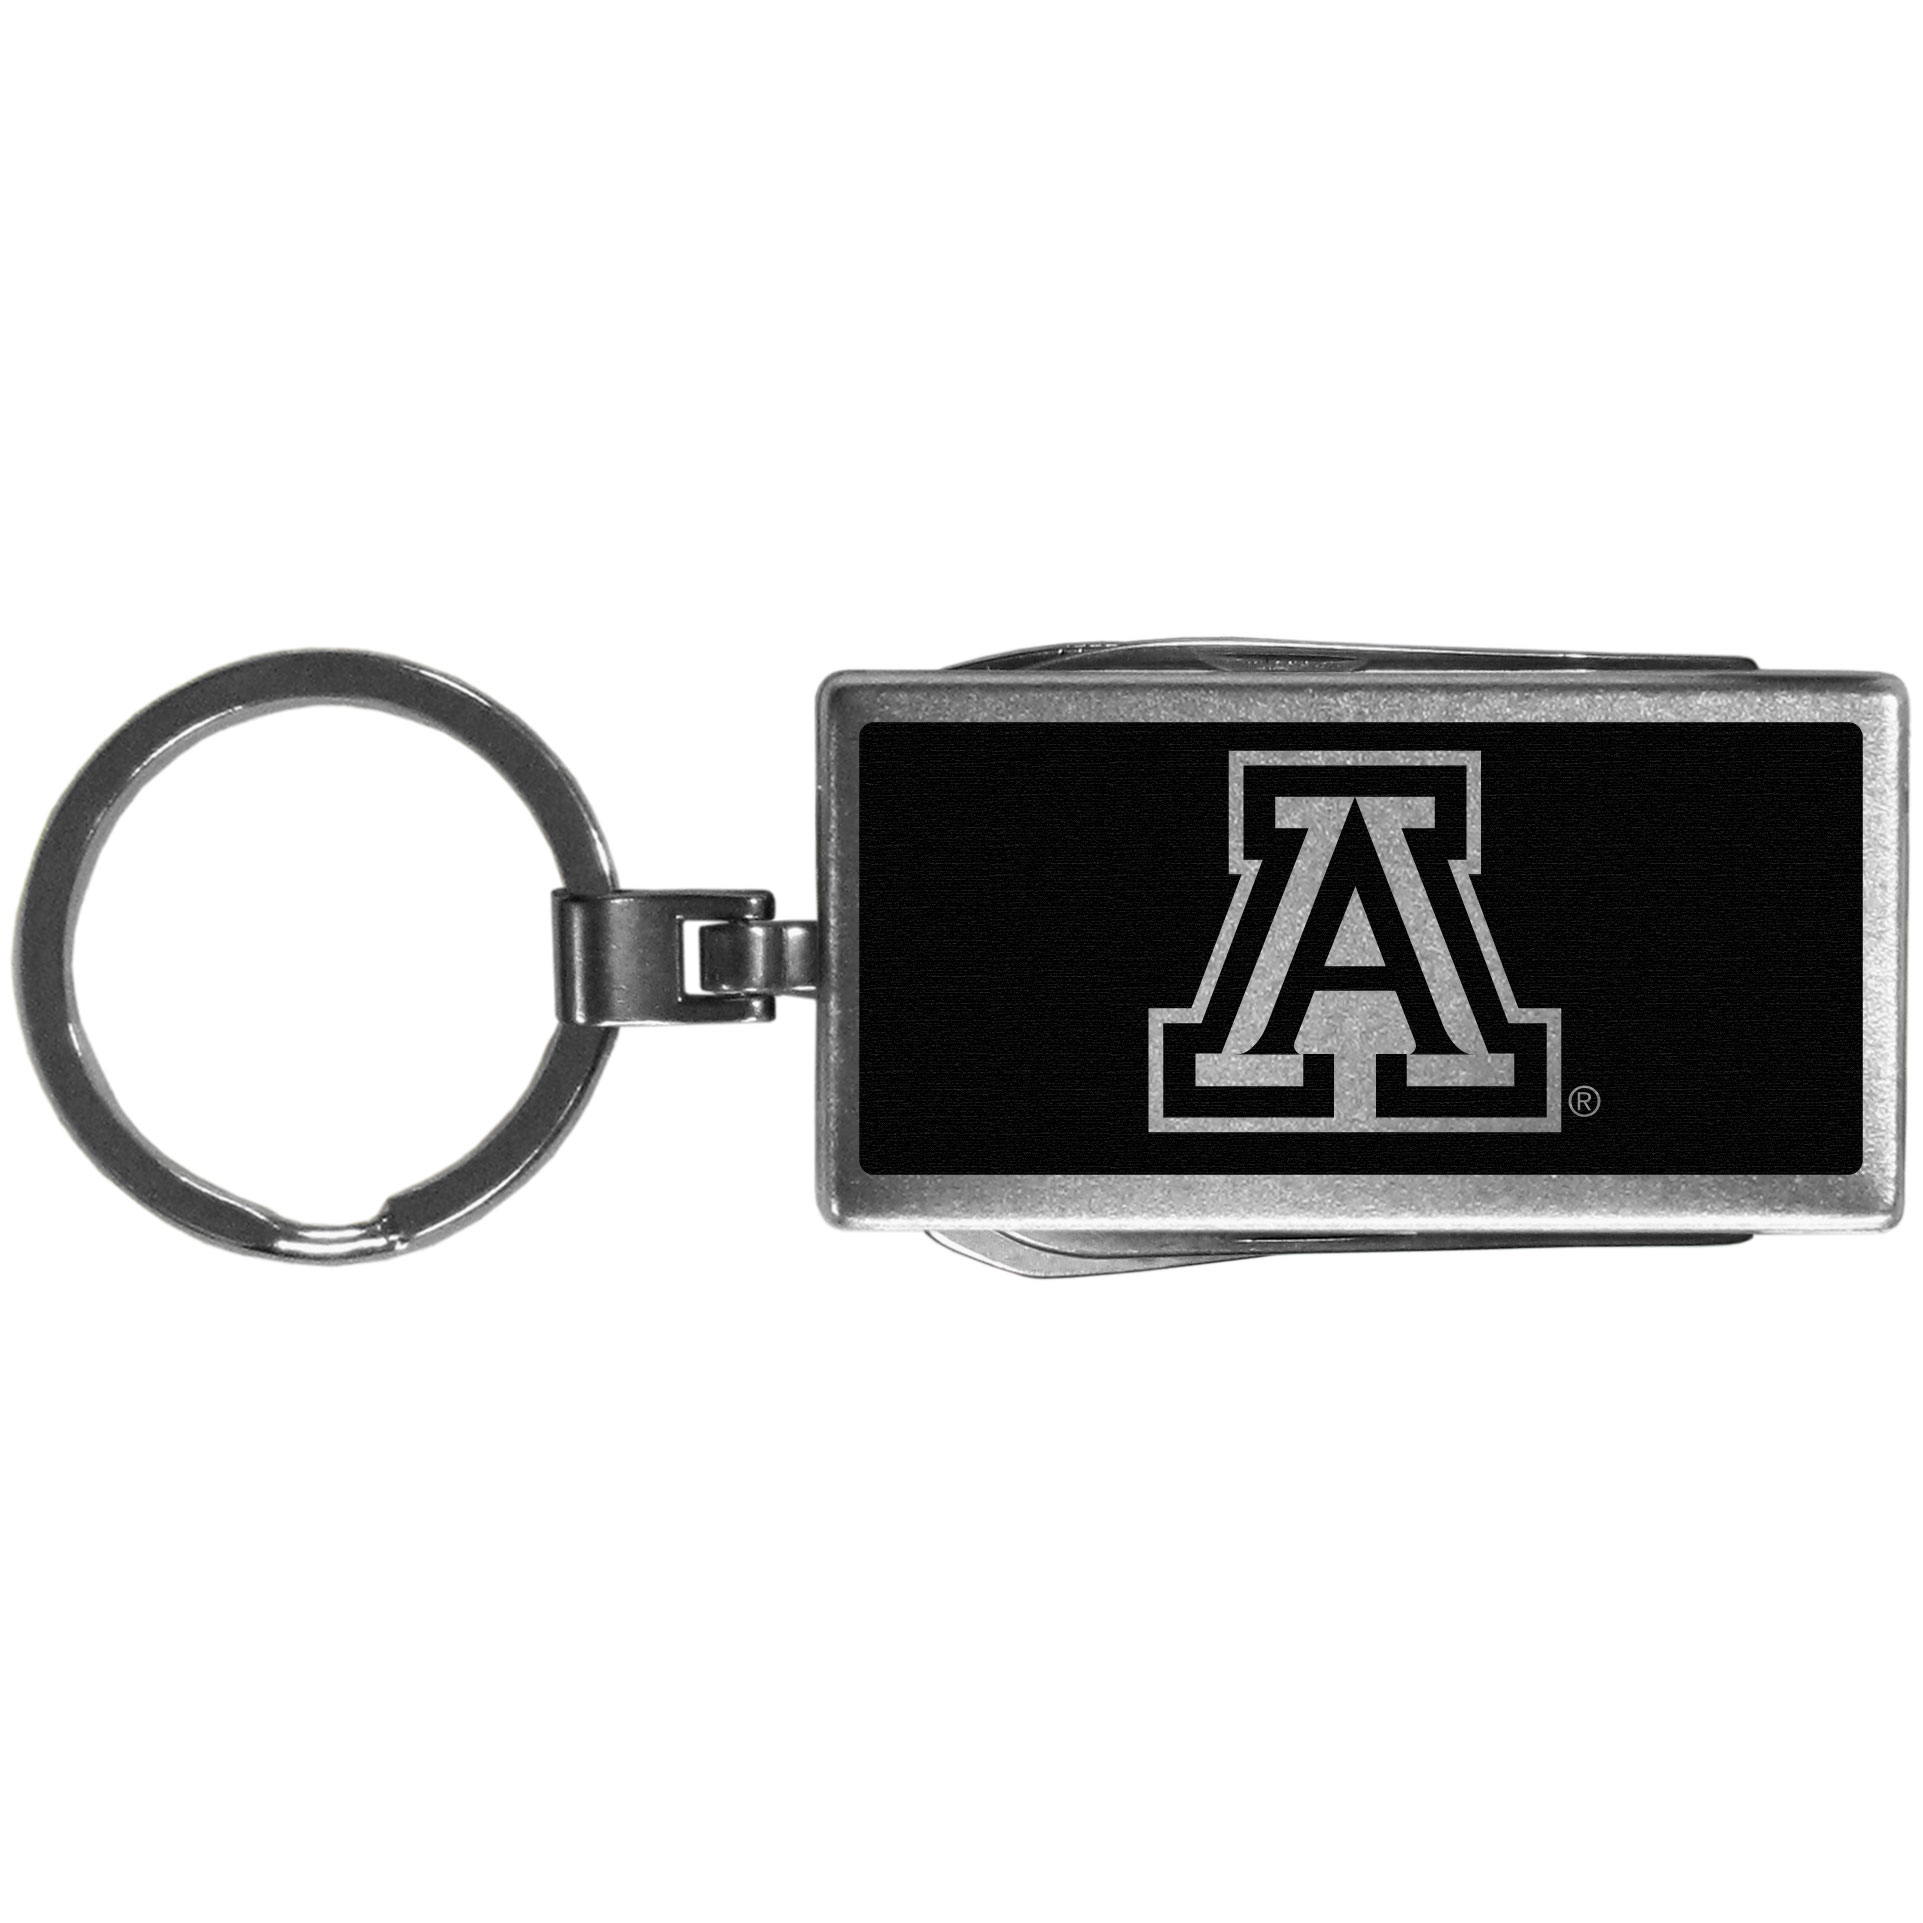 Arizona Wildcats Multi-tool Key Chain, Black - Be the hero at the tailgate, camping, or on a Friday night with your Arizona Wildcats Multi-Tool Keychain which comes complete with bottle opener, scissors, knife, nail file and screw driver. Be it opening a package or a beverage Siskiyou's Multi-Tool Keychain goes wherever your keys do. The keychain hangs at 4 inches long when closed.